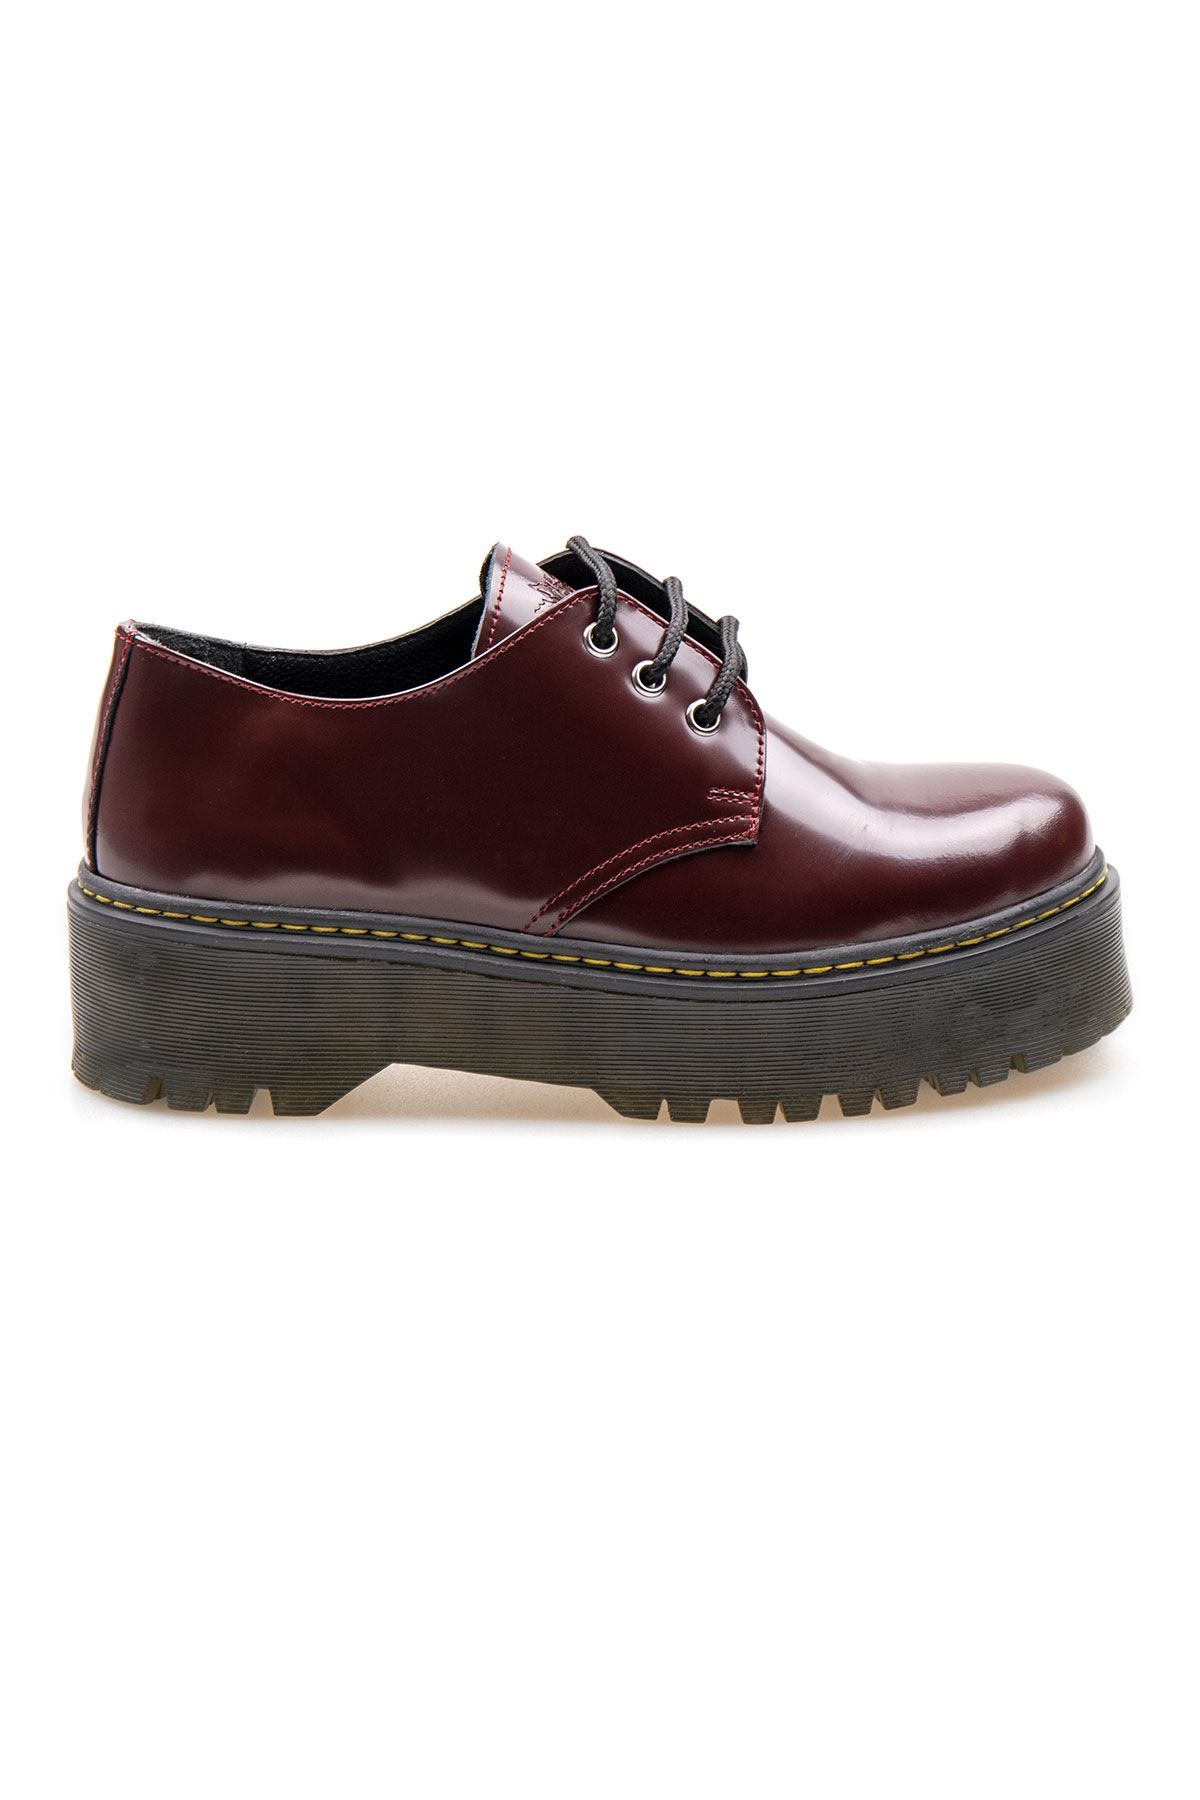 Pegia Genuine Leather Women's Shoes 500701 Claret red